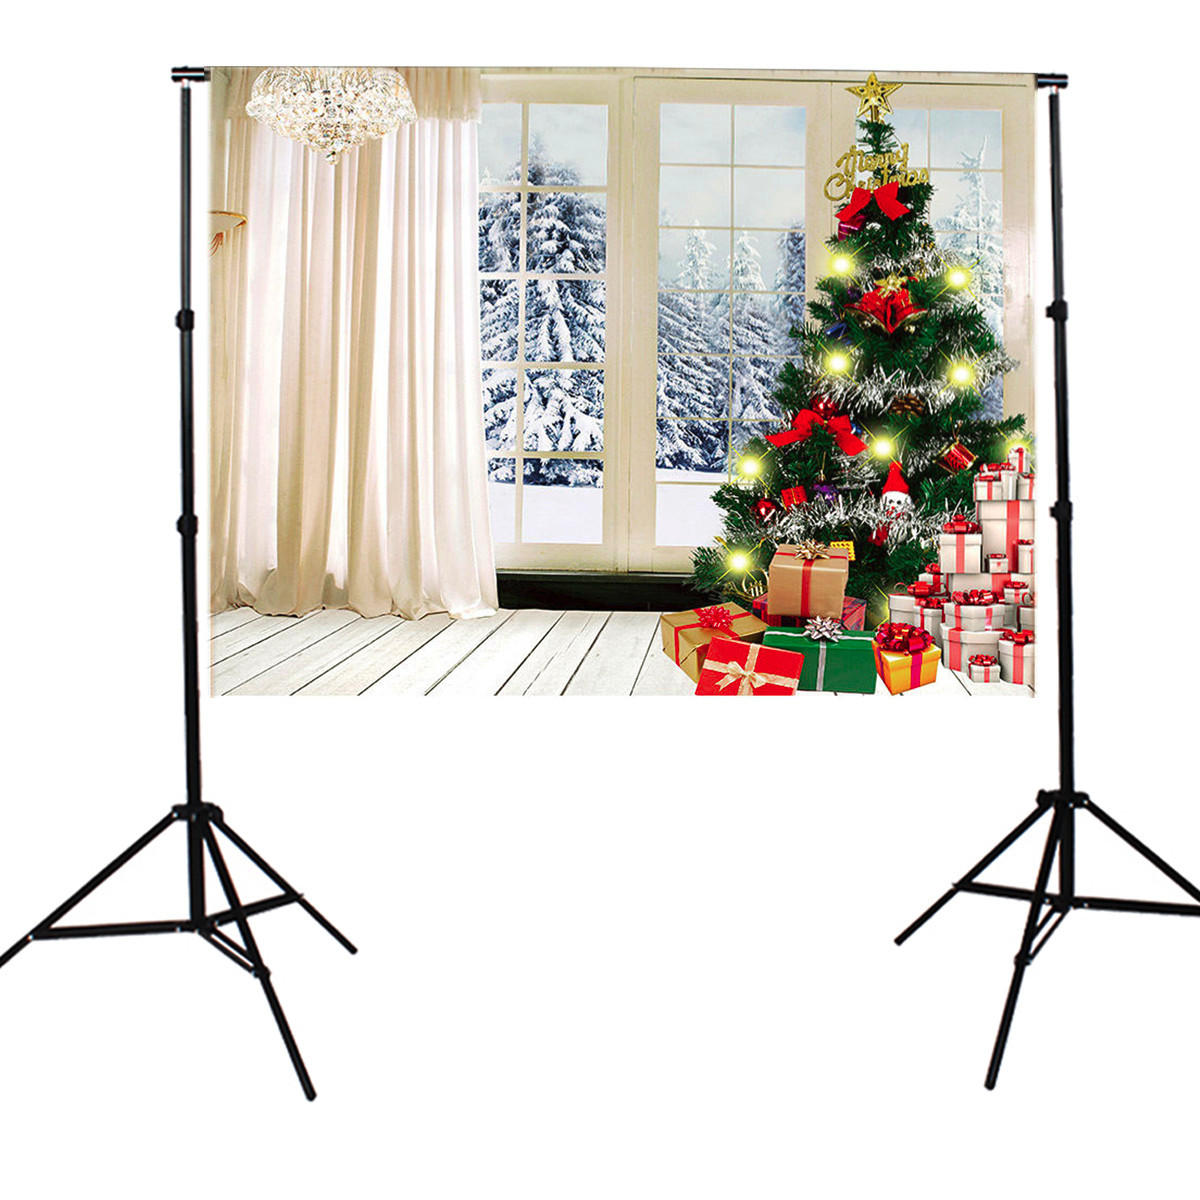 7X5FT Indoor White Christmas Theme Studio Photography Background Photographic Backdrop